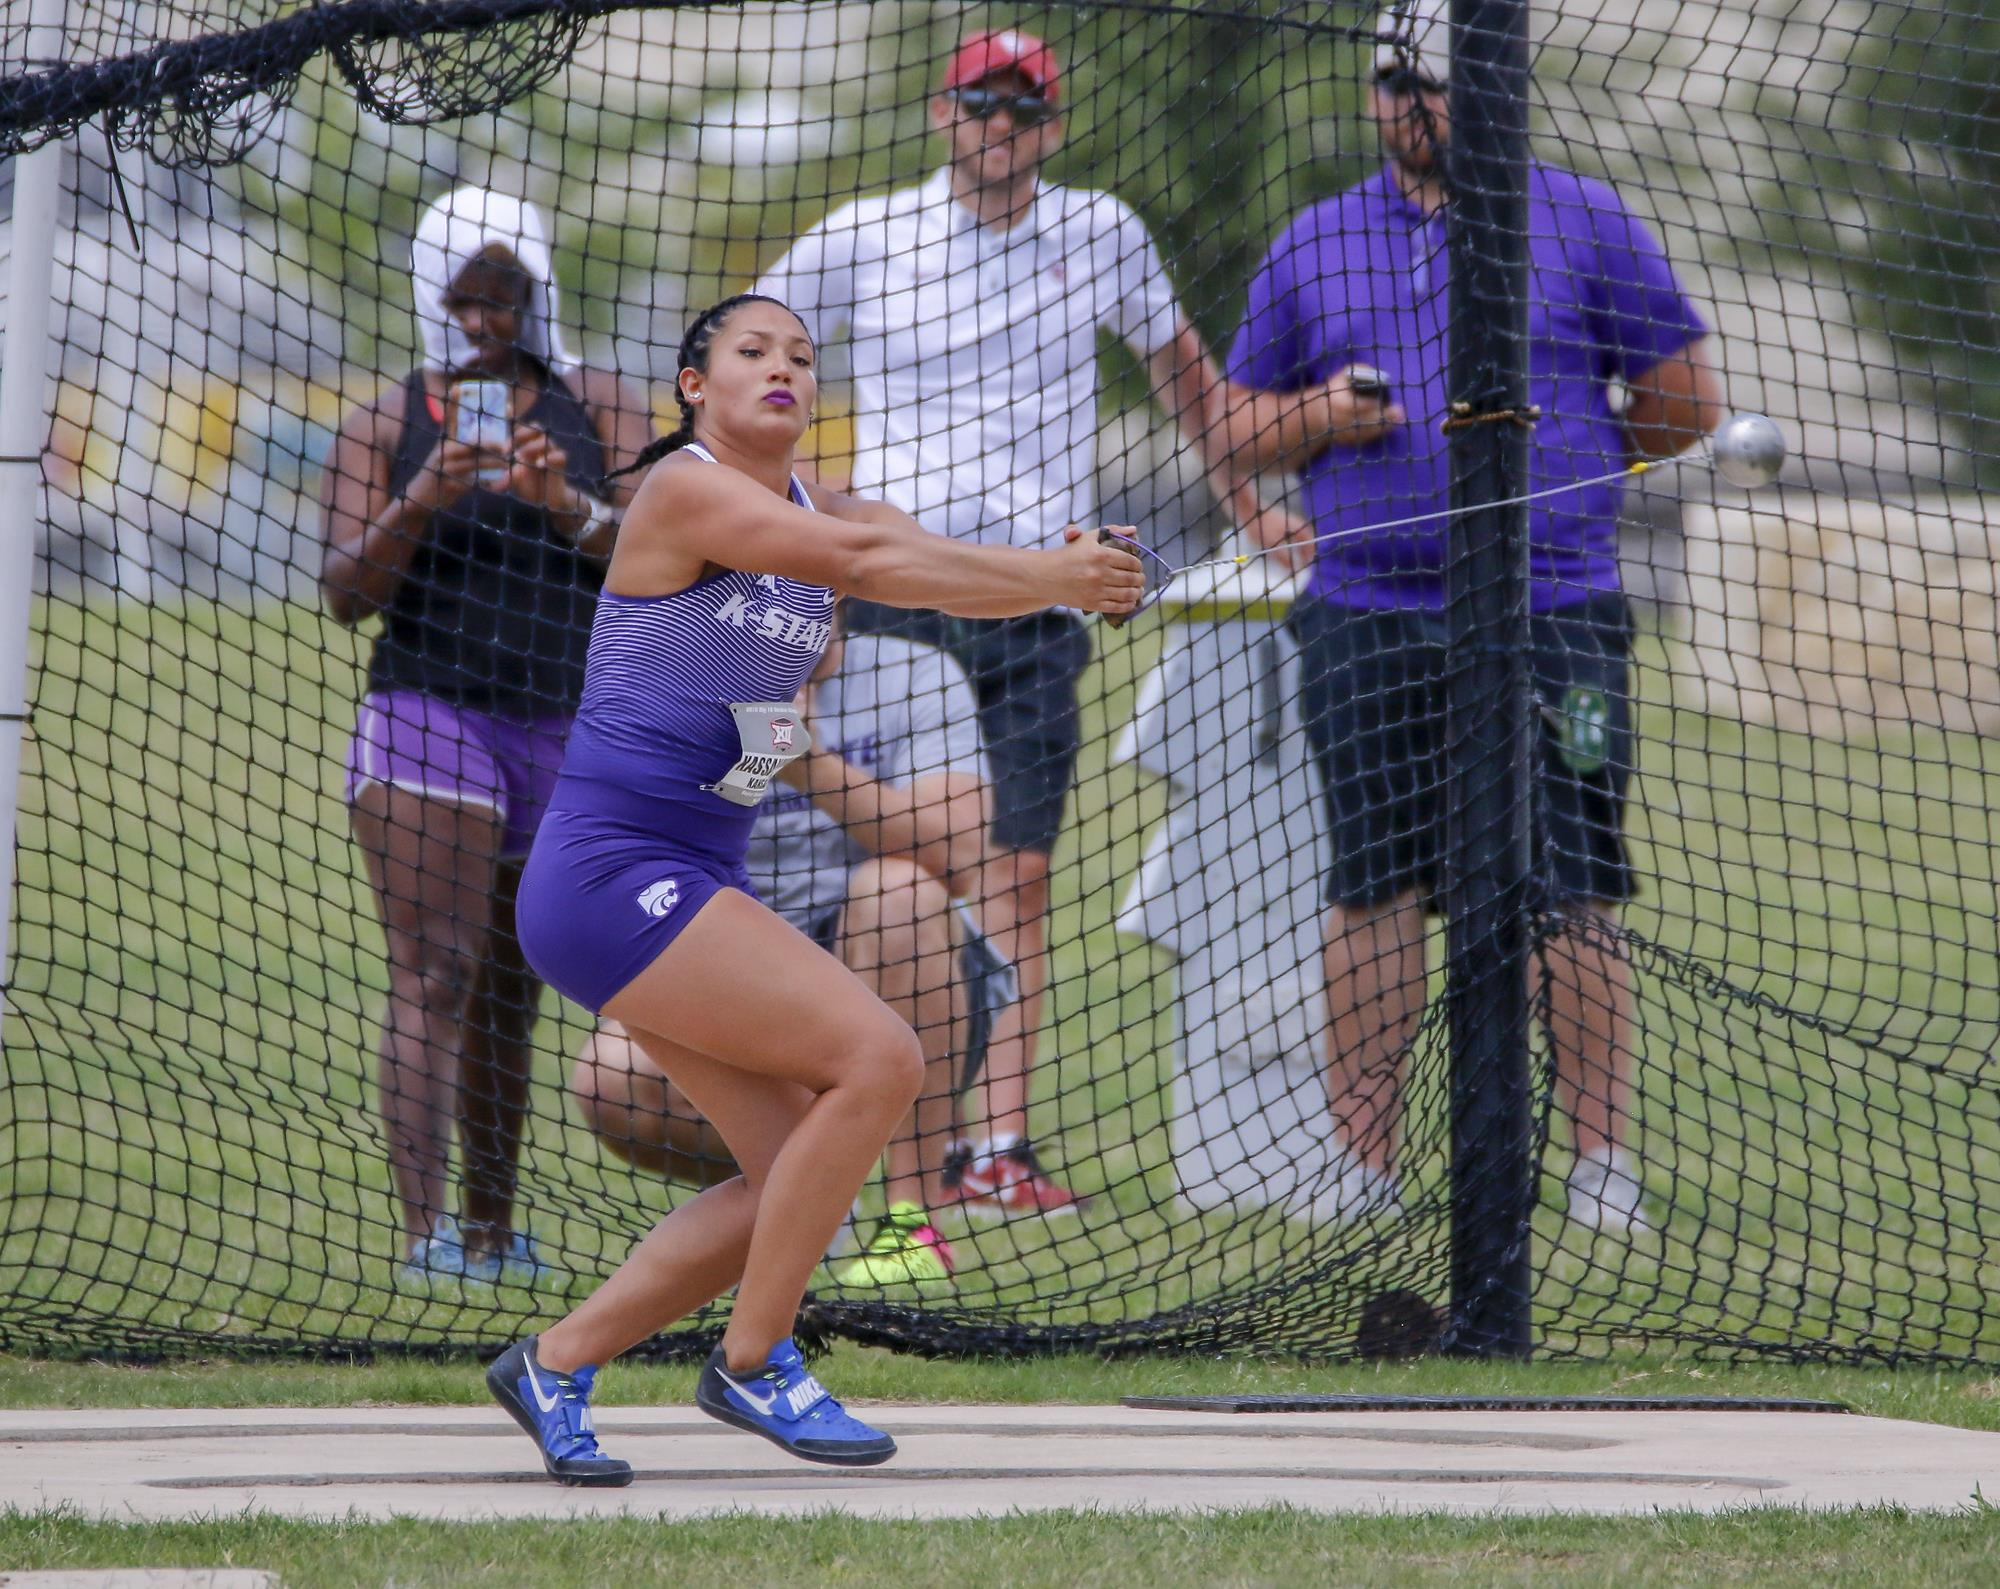 Kassanavoid Secures Second-Consecutive Big 12 Hammer Throw